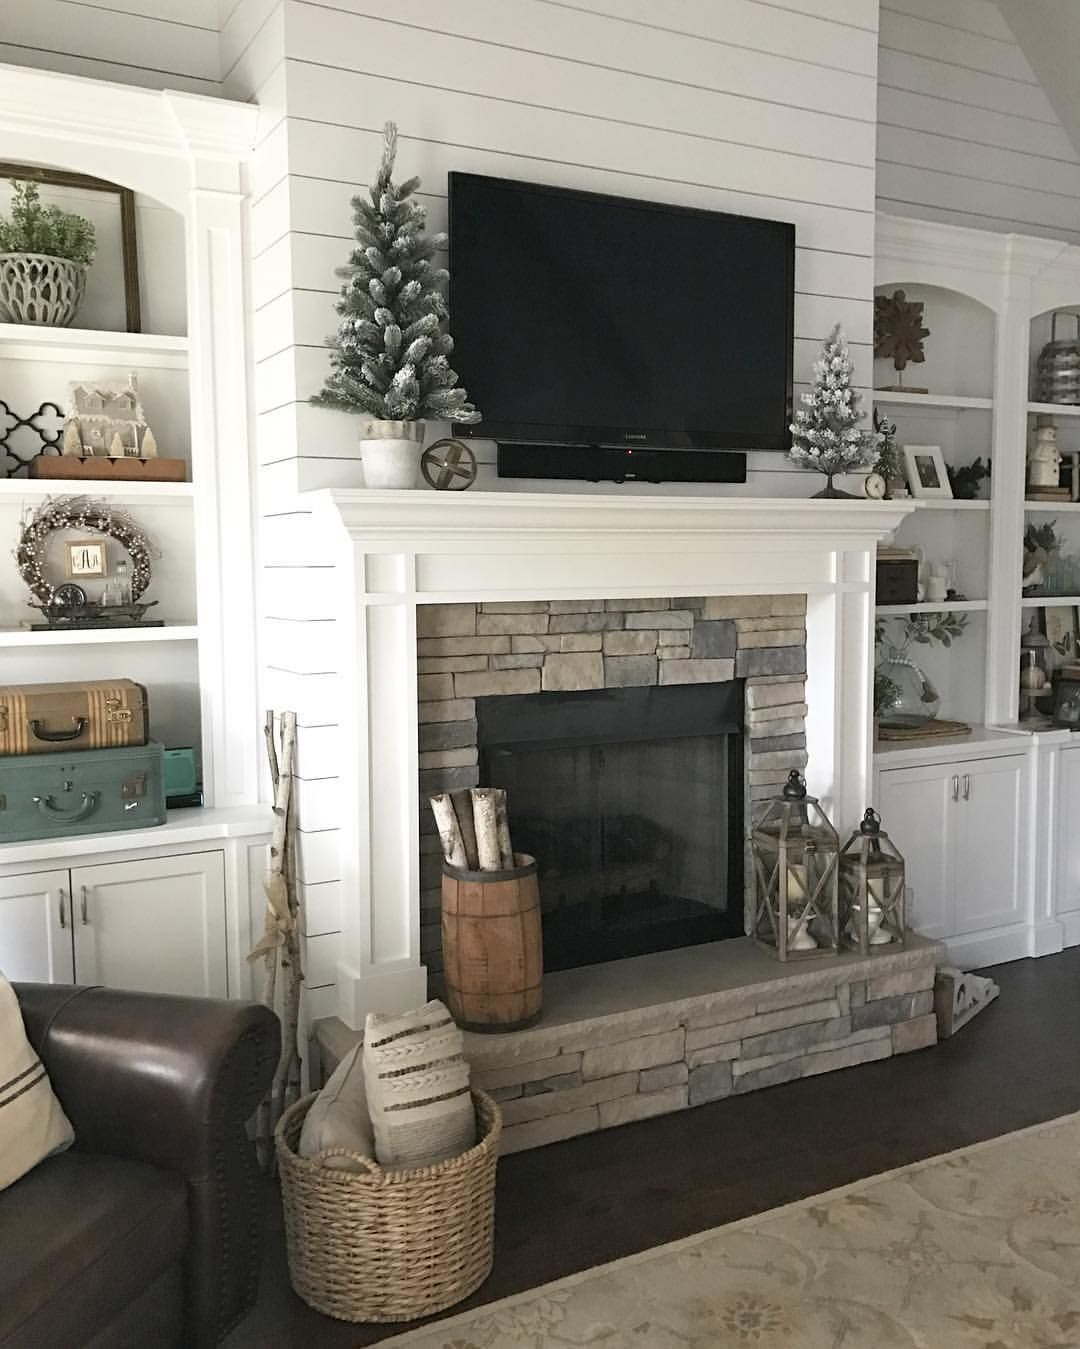 Fireplaces With Stone Surrounding Pin By Sarah Hora On Decor 2 In 2019 Home Fireplace Home Decor